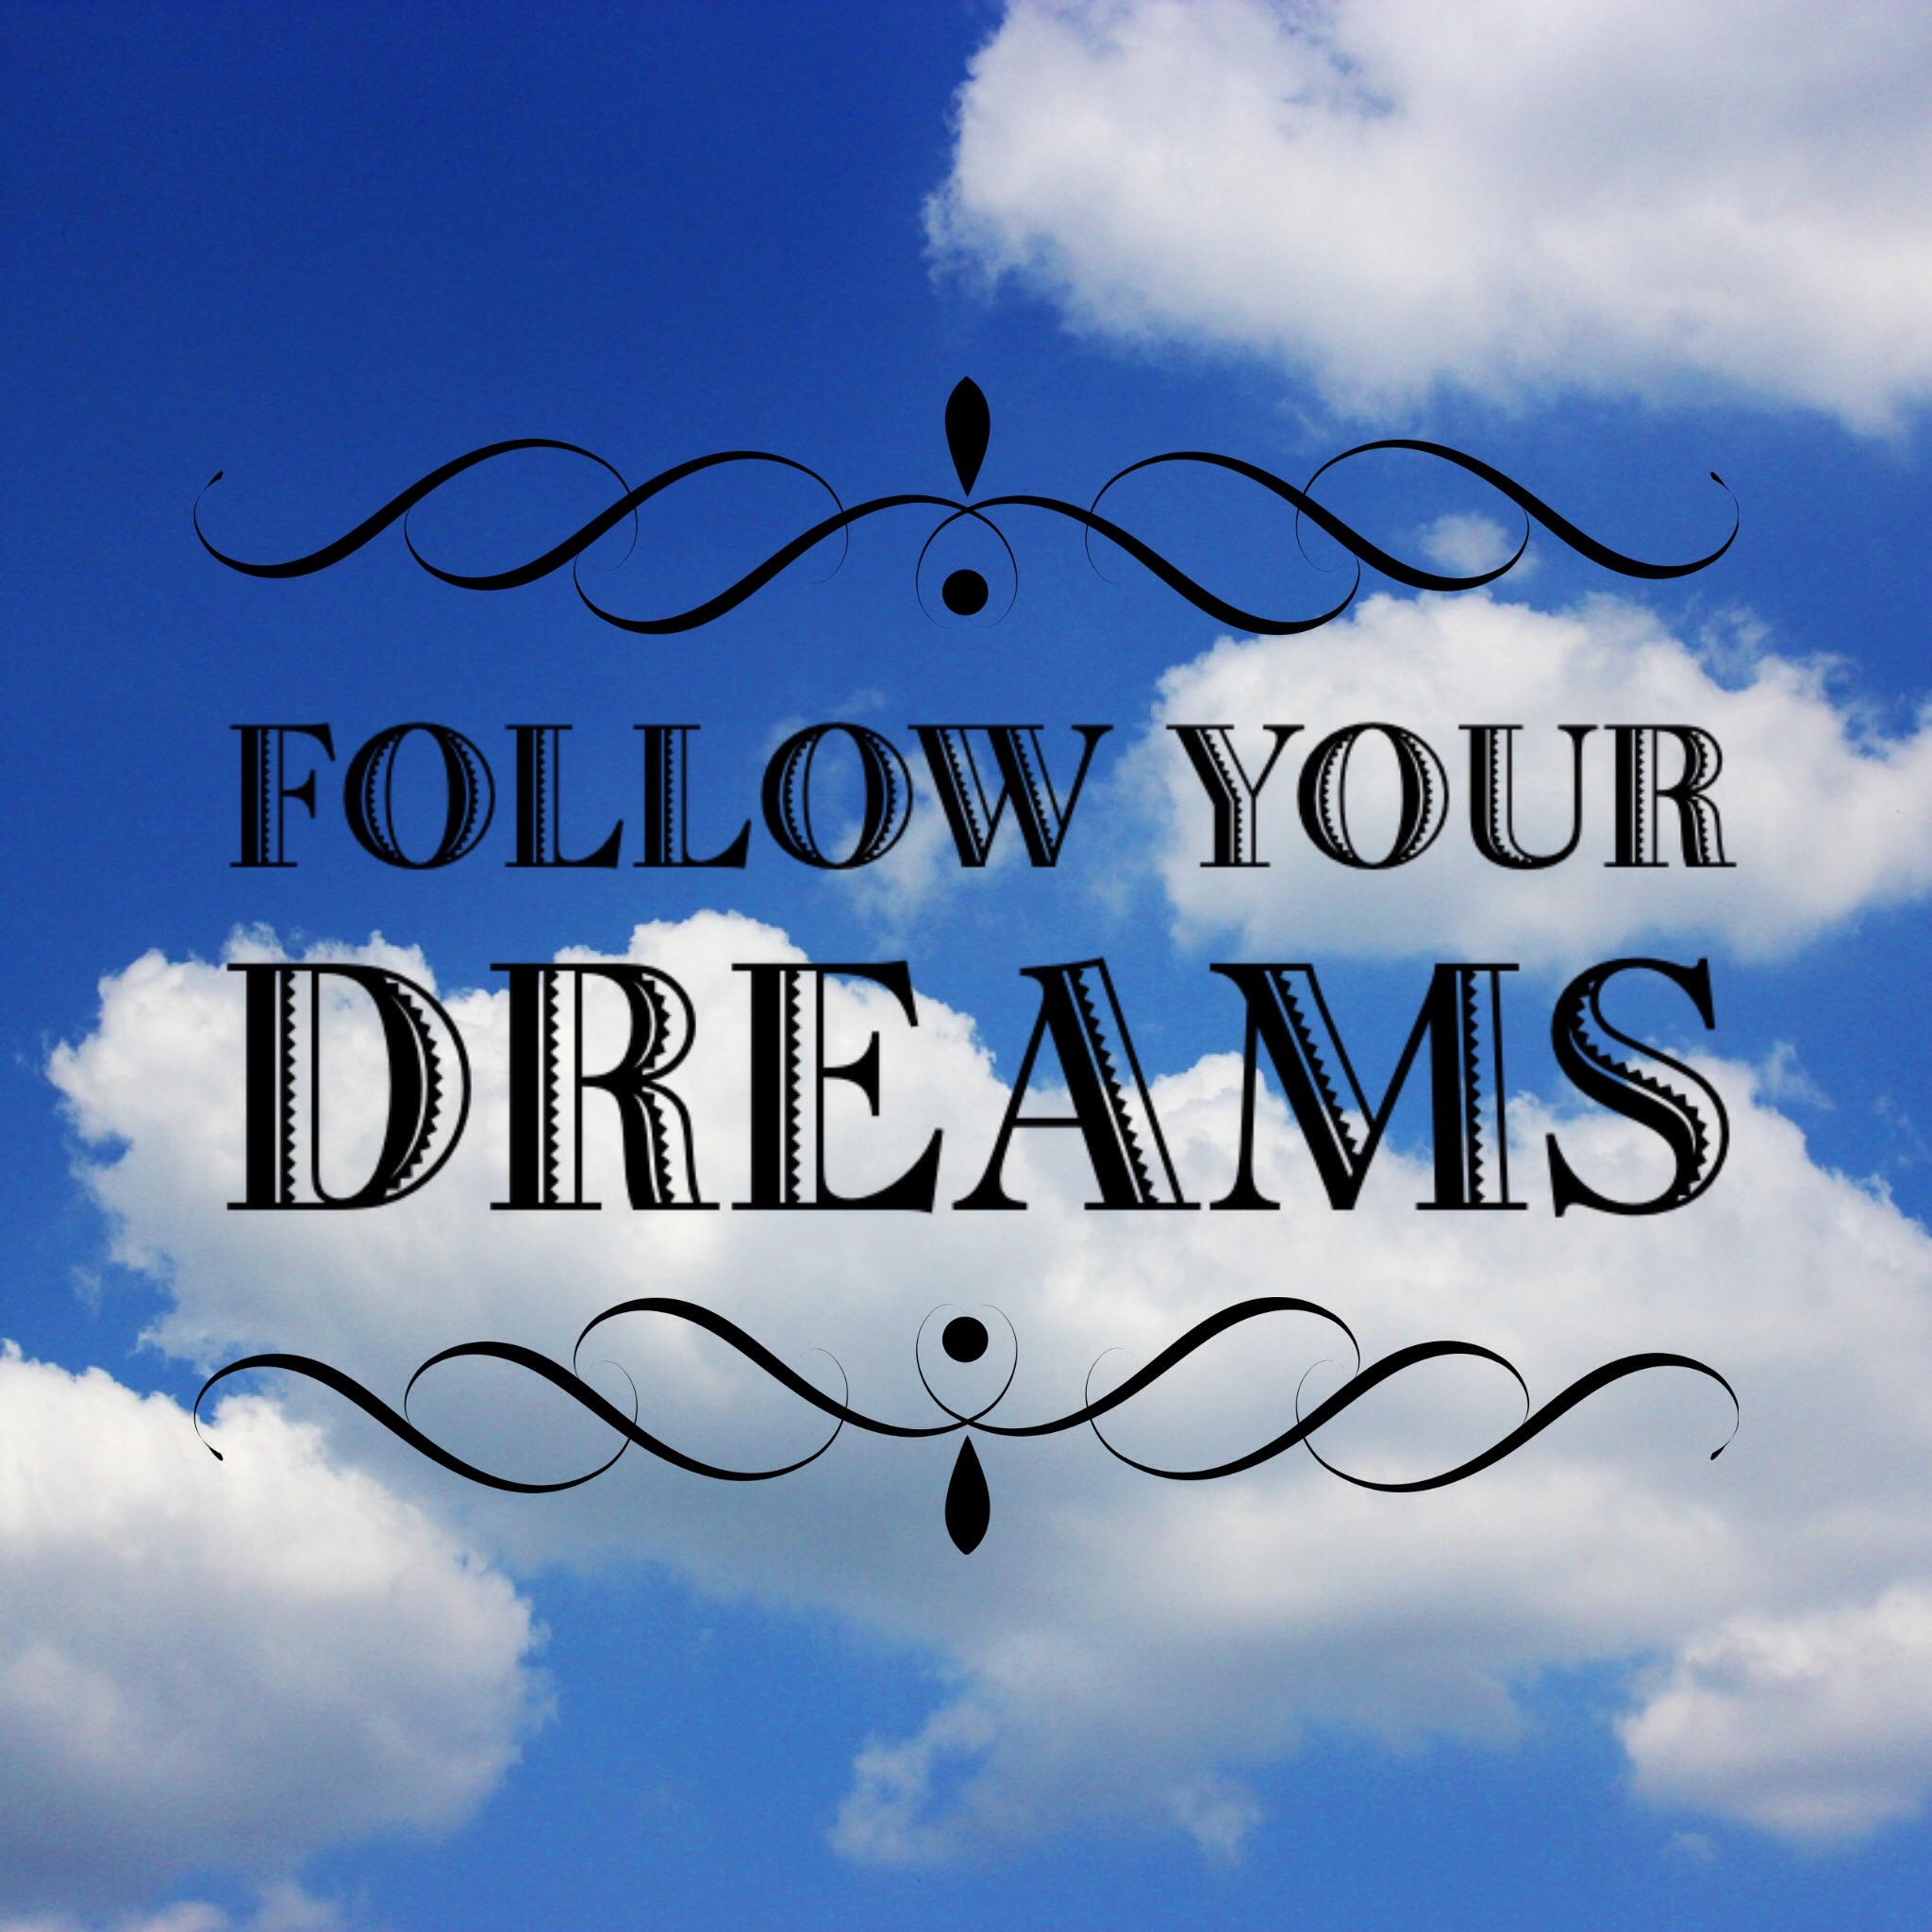 To Follow Your Dreams